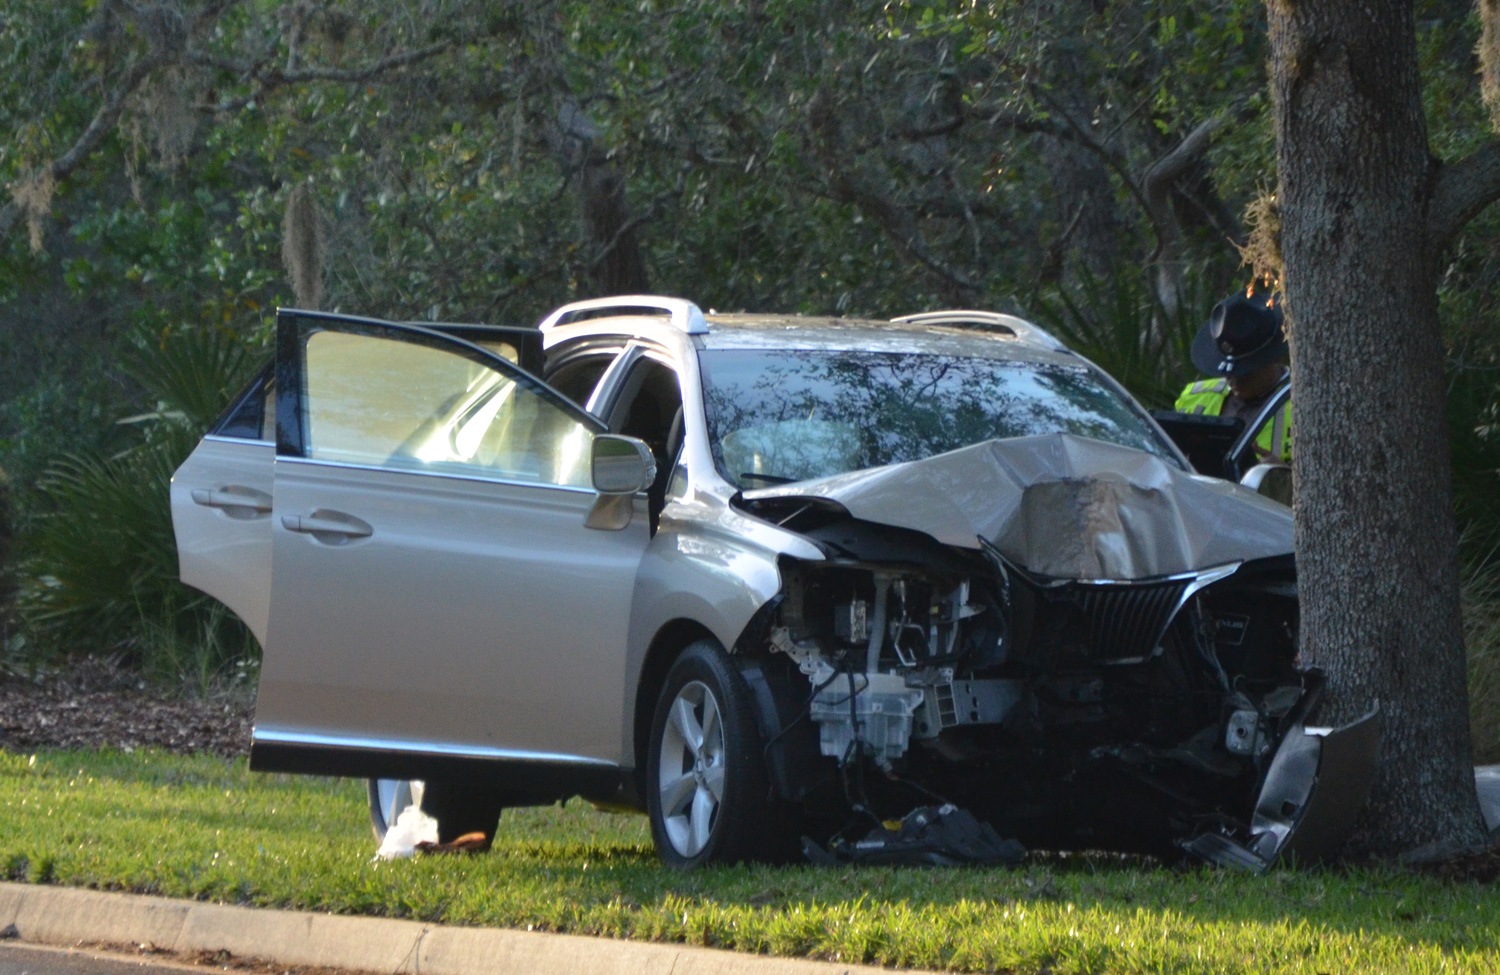 The Lexus struck an oak head on. Click on the image for larger view. (c FlaglerLive)